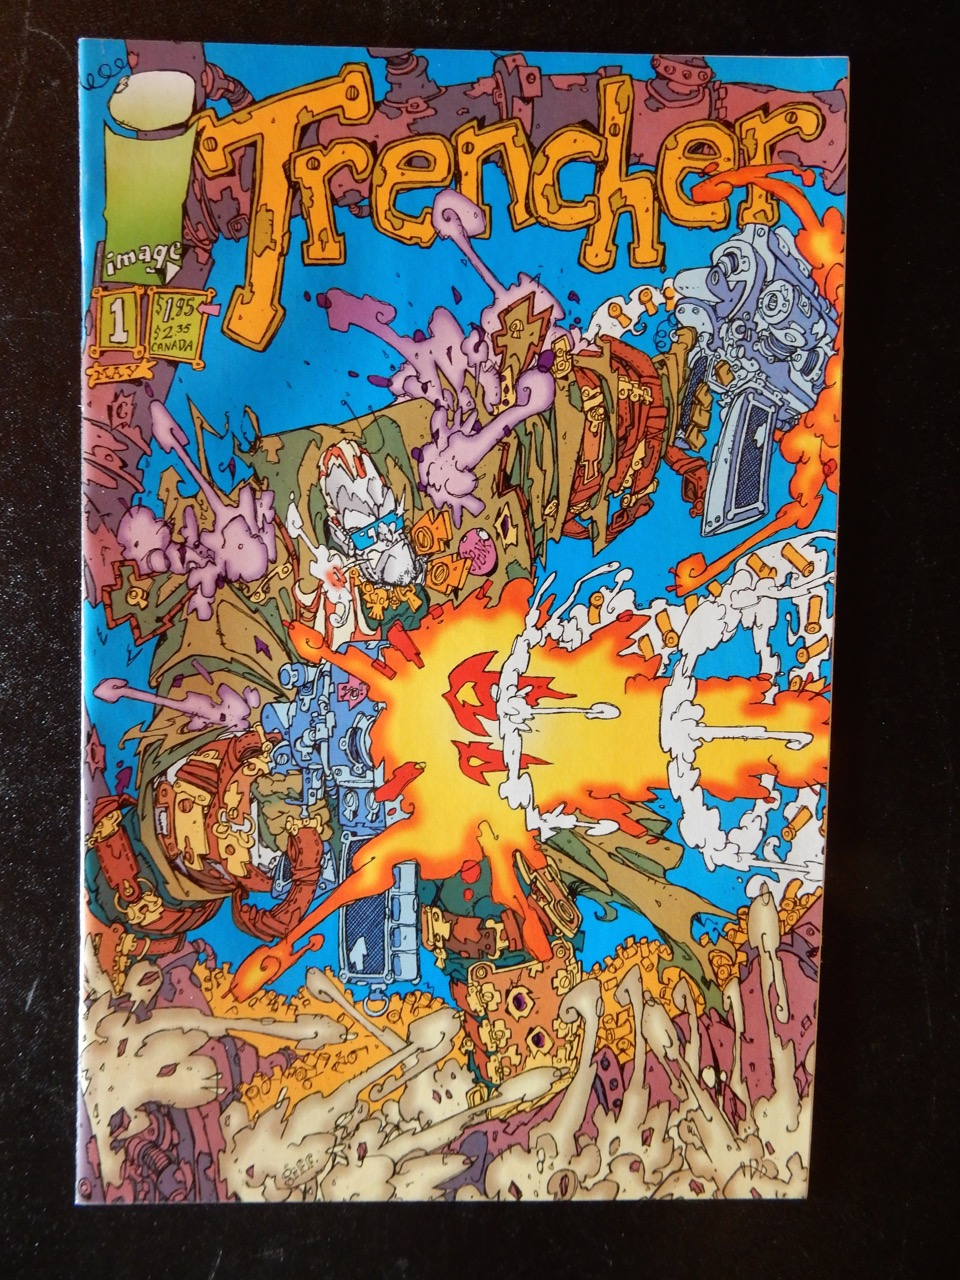 Trencher #1 Comic book by Keith Giffen